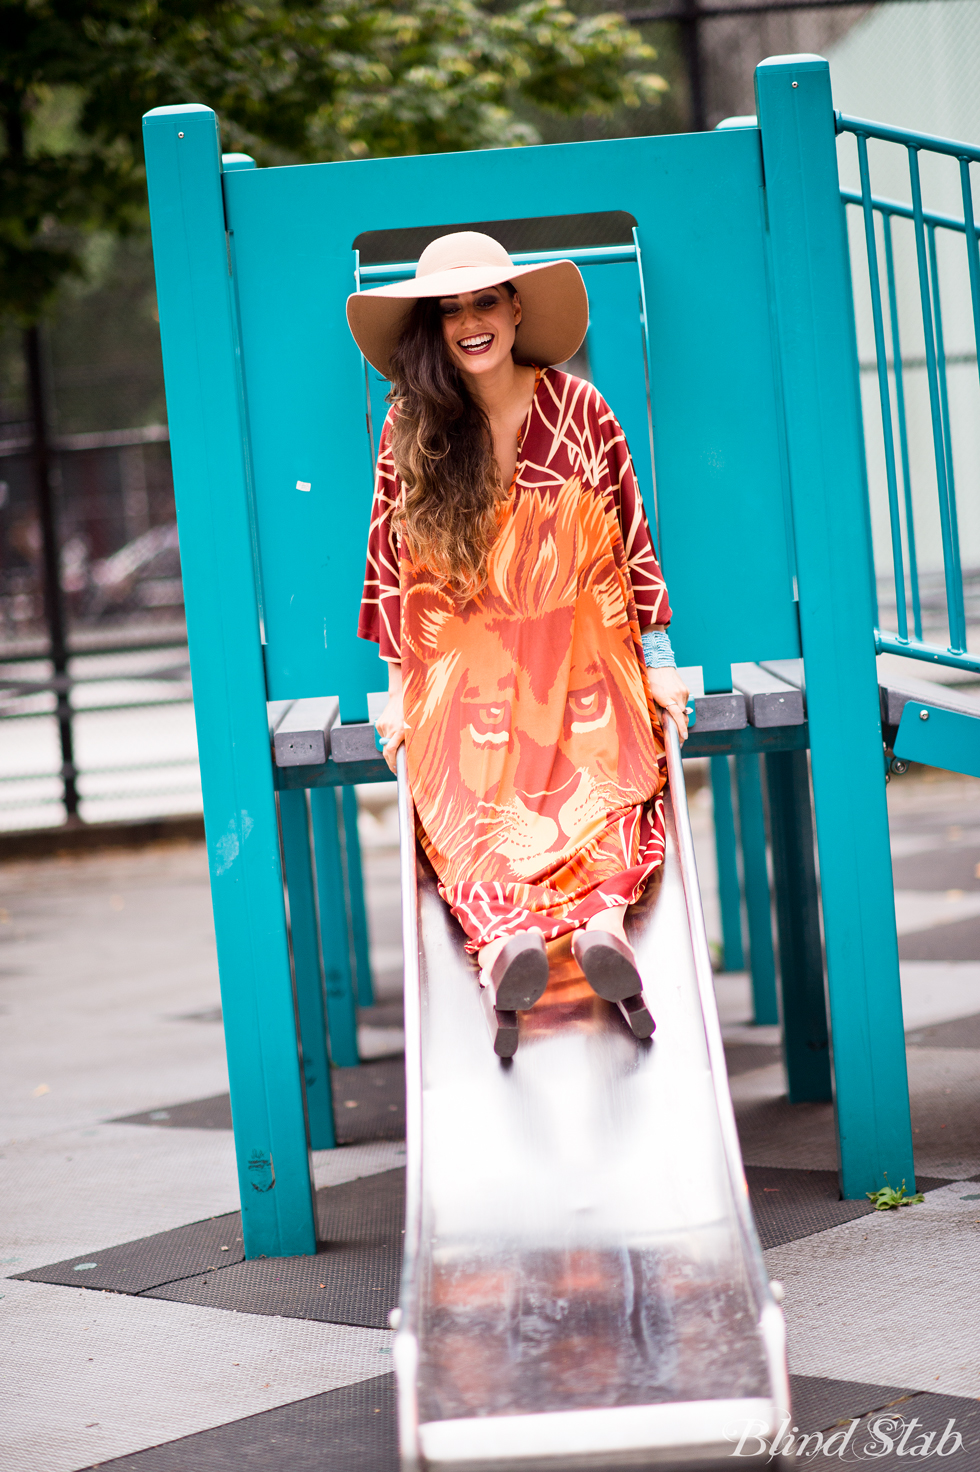 Streetstyle-Vintage-Maxi-Dress-Floppy-Hat